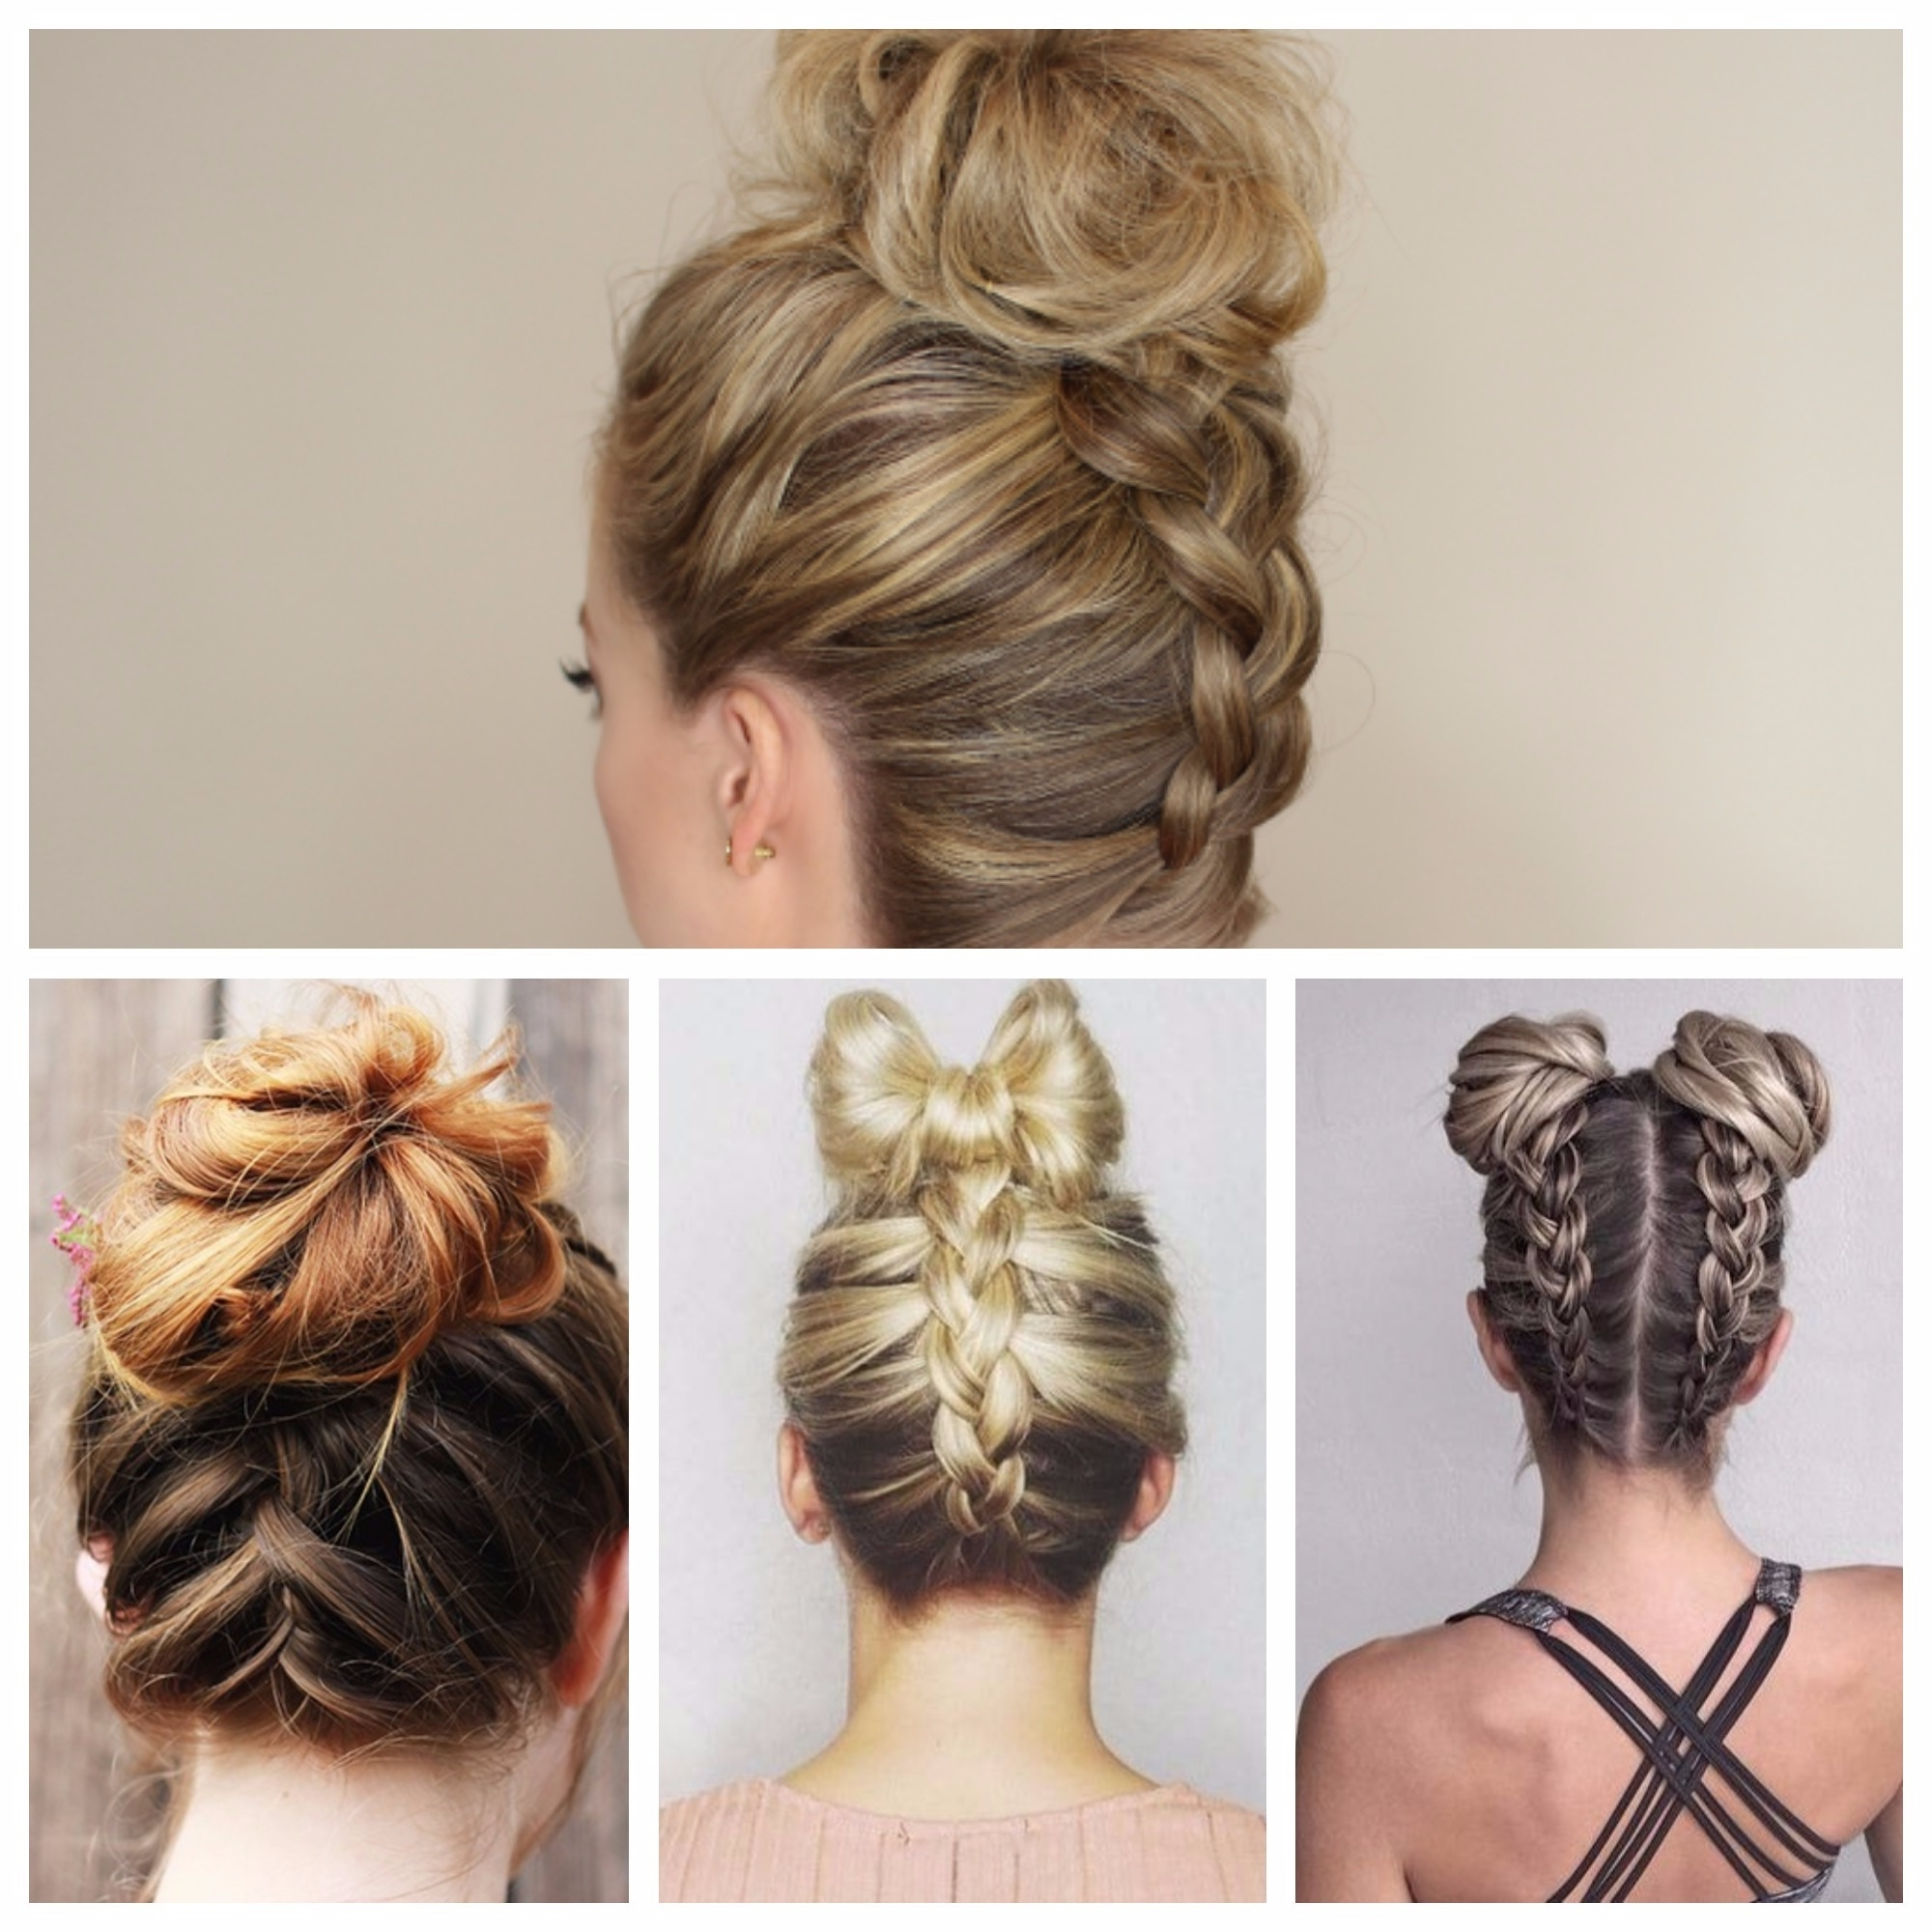 Most Recently Released Down Braided Hairstyles With Regard To Upside Down French Braid Hairstyles For 2018 – New Hairstyles (View 12 of 15)